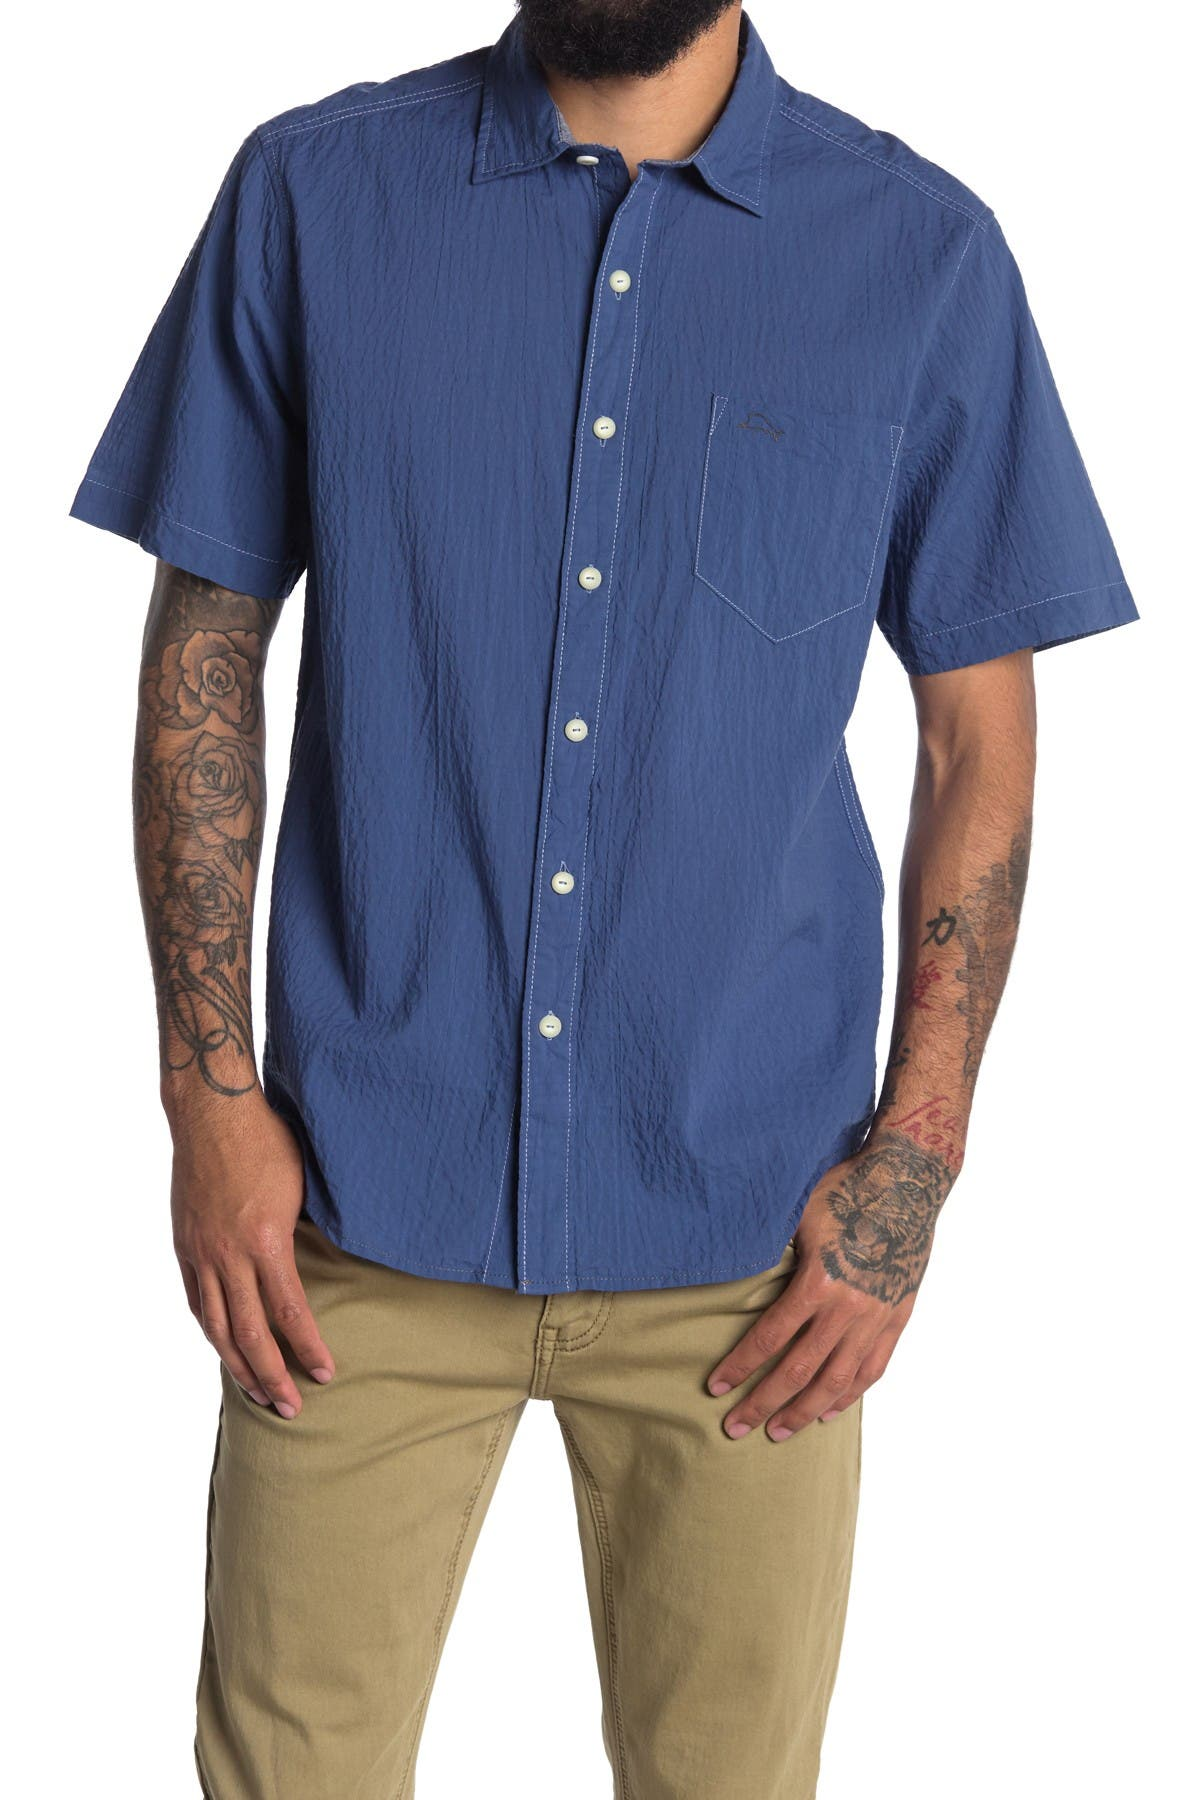 Image of Tommy Bahama Spread Collar Short Sleeve Shirt